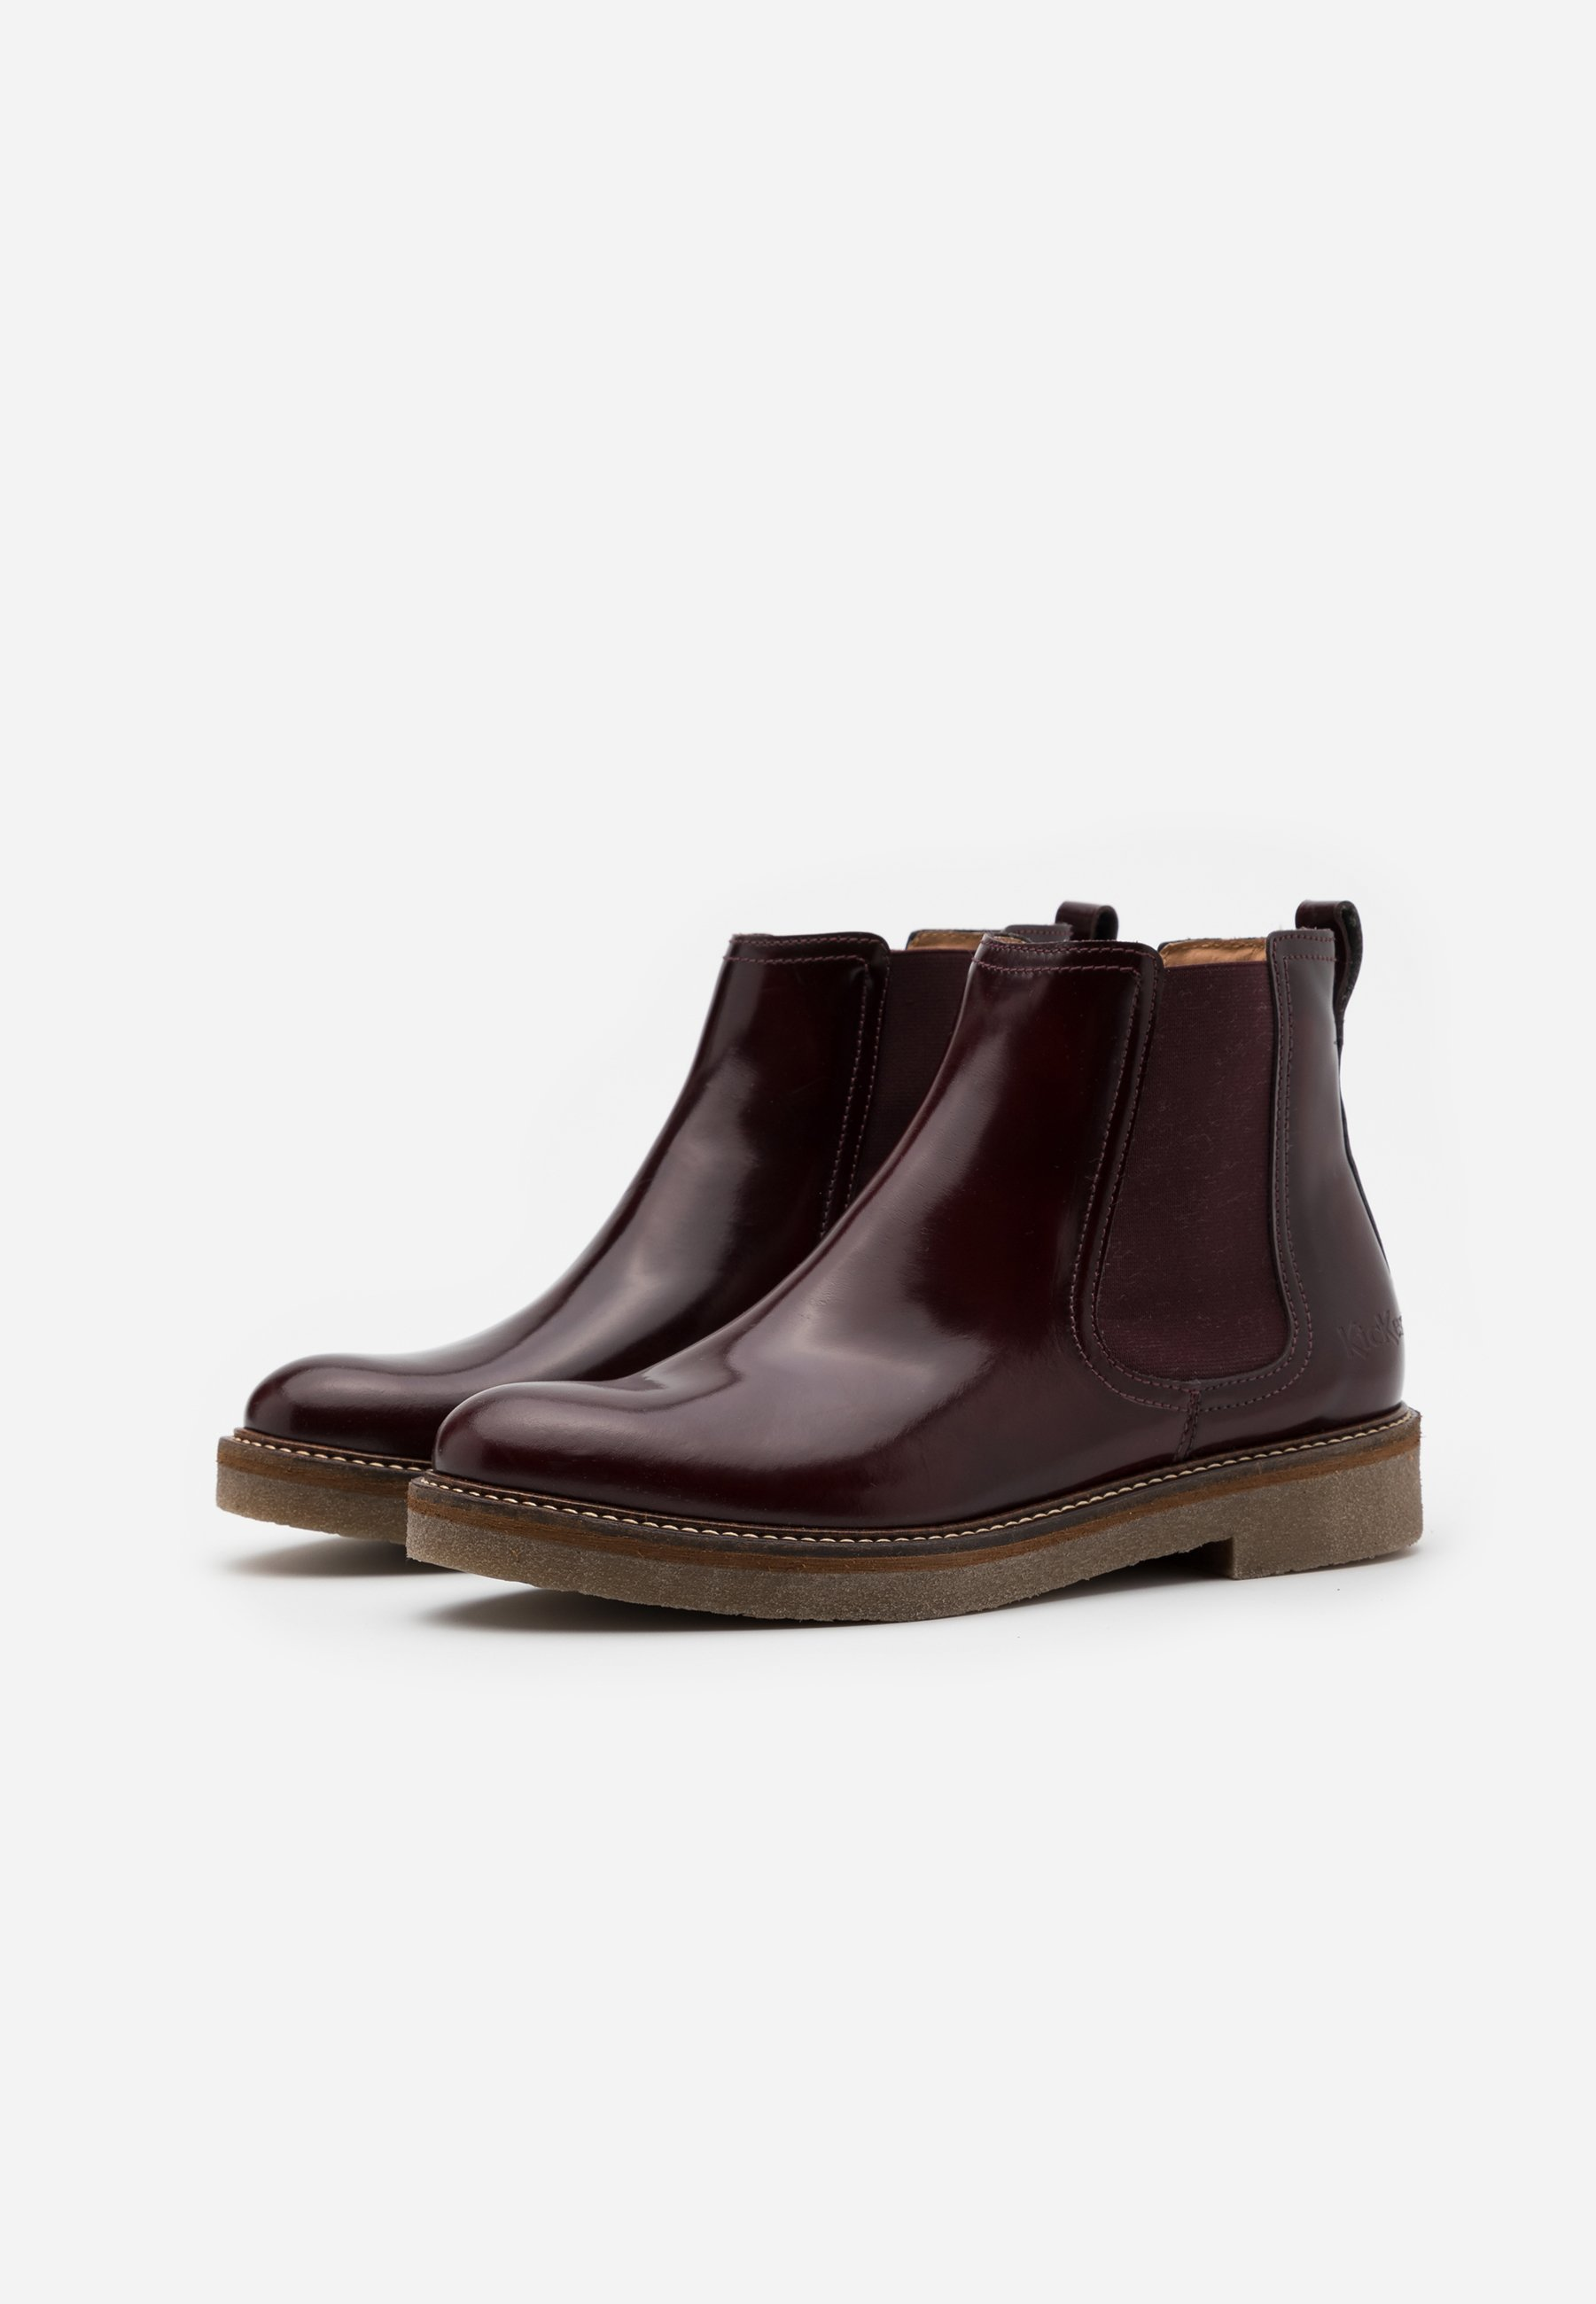 2013 Cheapest Kickers OXFORDCHIC - Ankle boots - burgundy | women's shoes 2020 Xzjbc